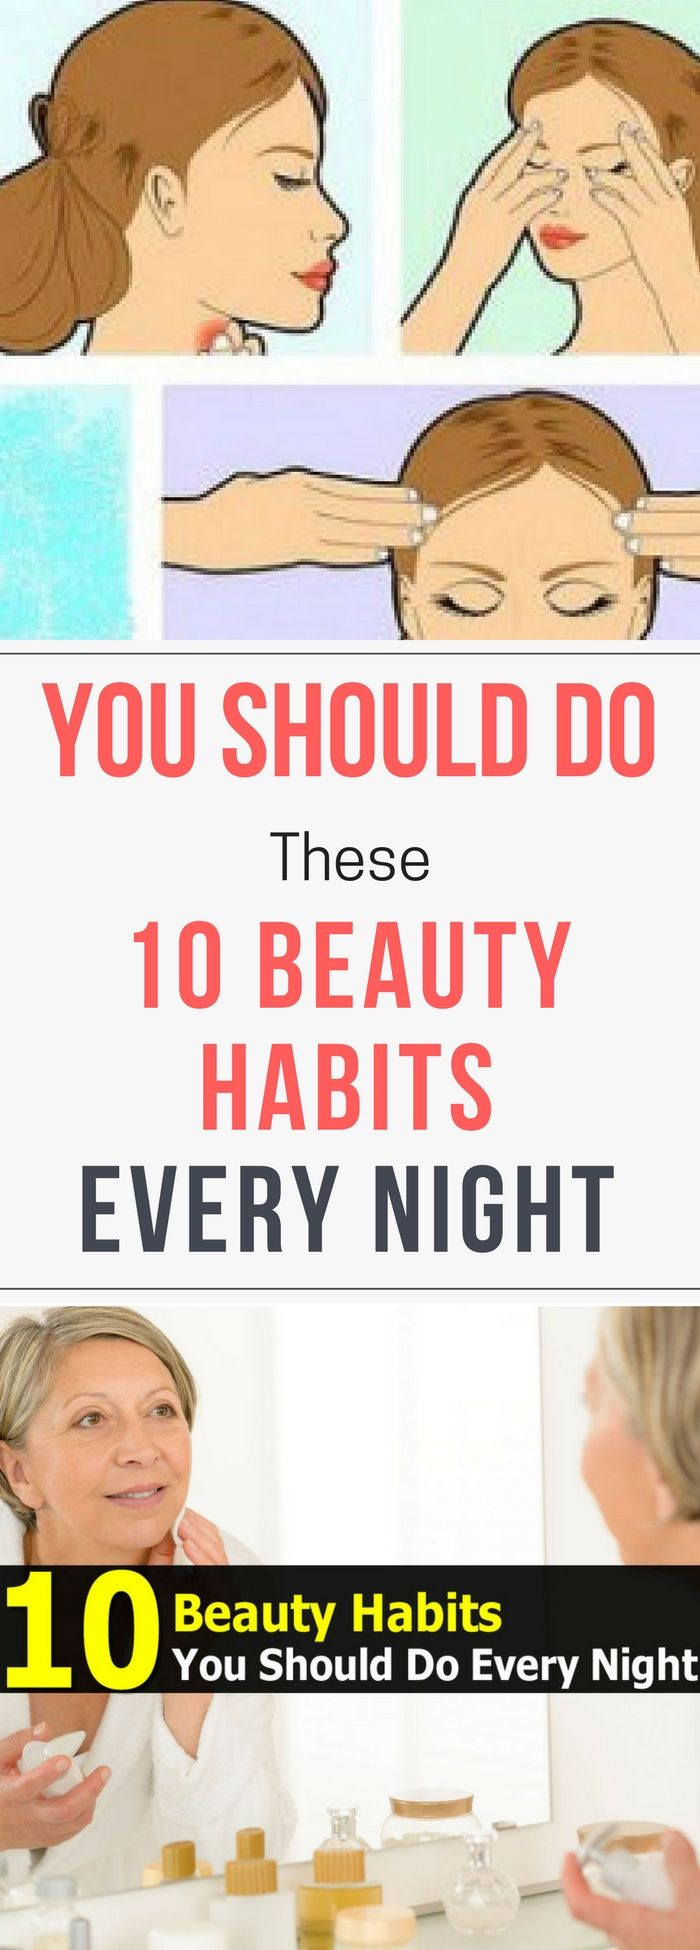 Discussion on this topic: 10 Beauty Habits You Should Be Doing , 10-beauty-habits-you-should-be-doing/